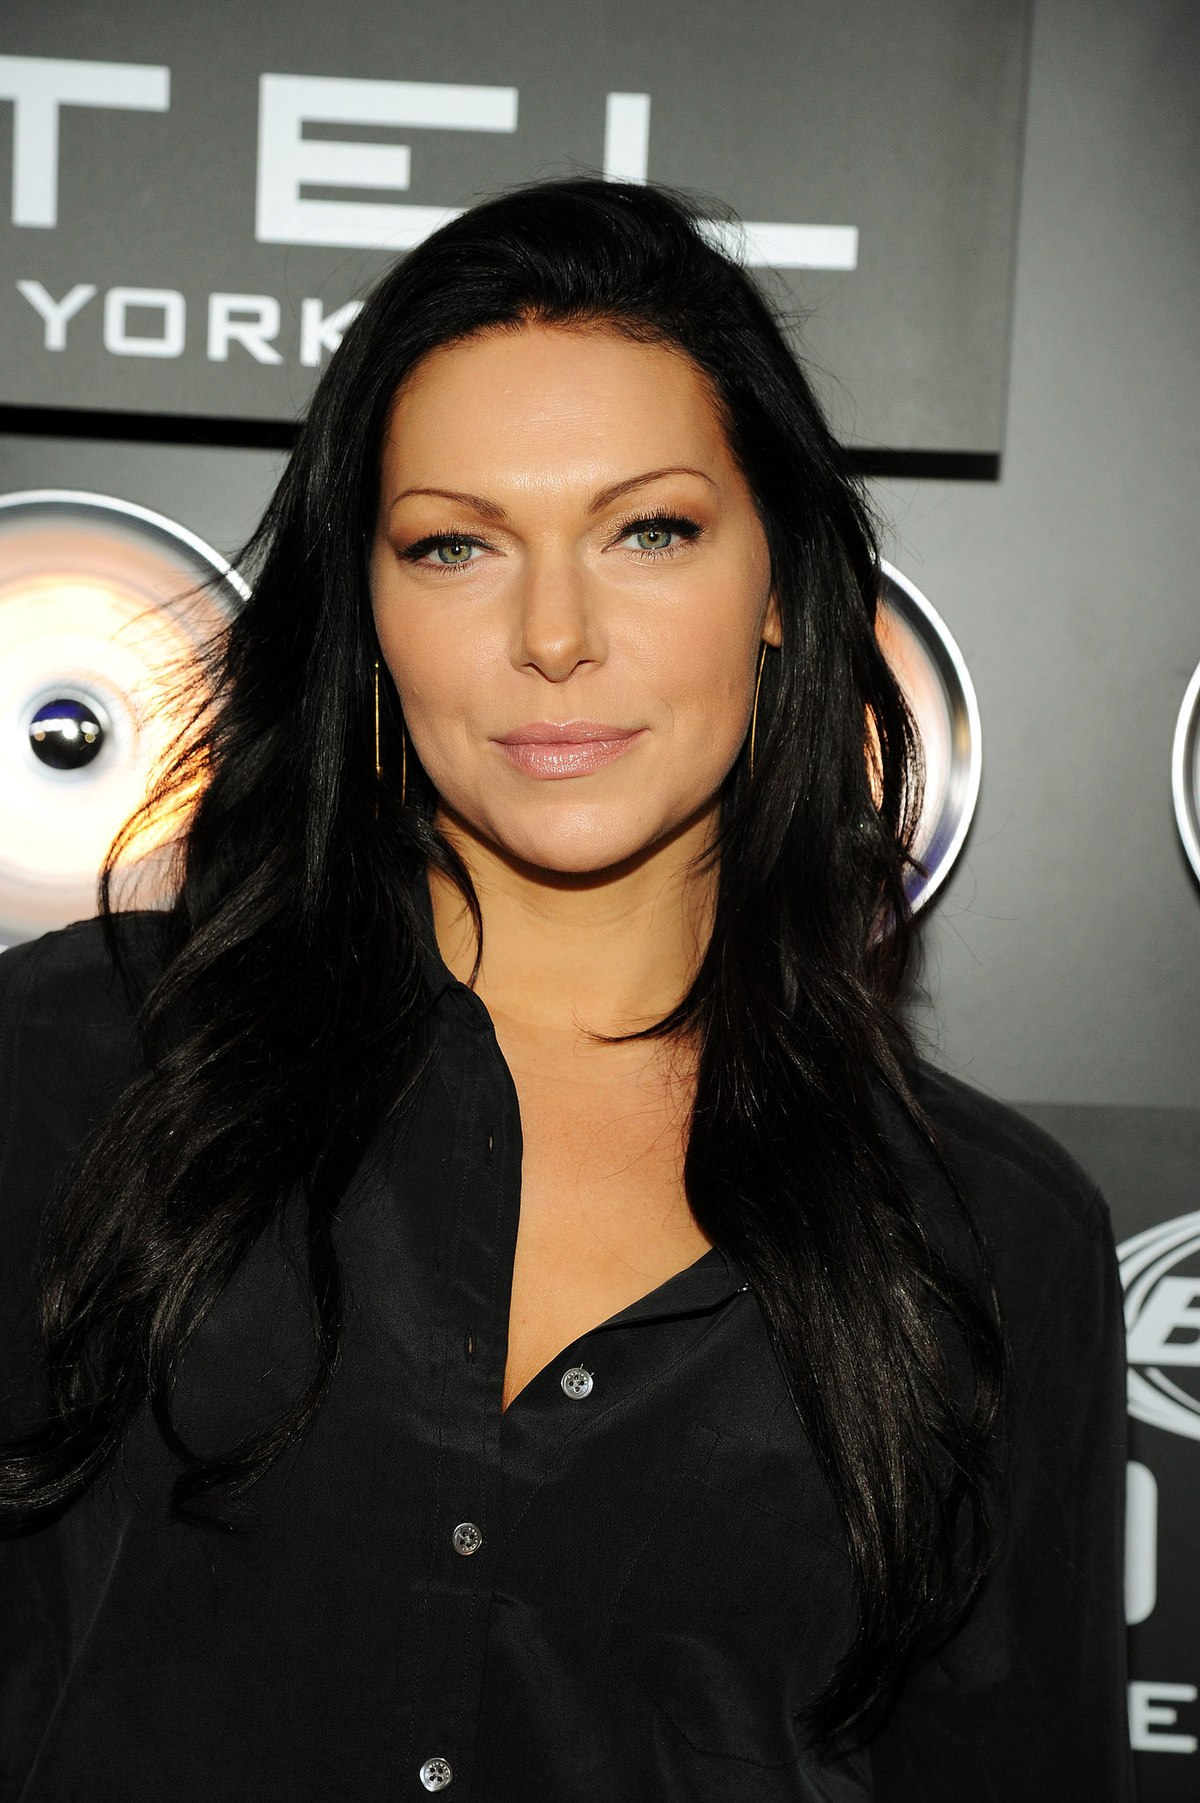 Lara prepon picture 19